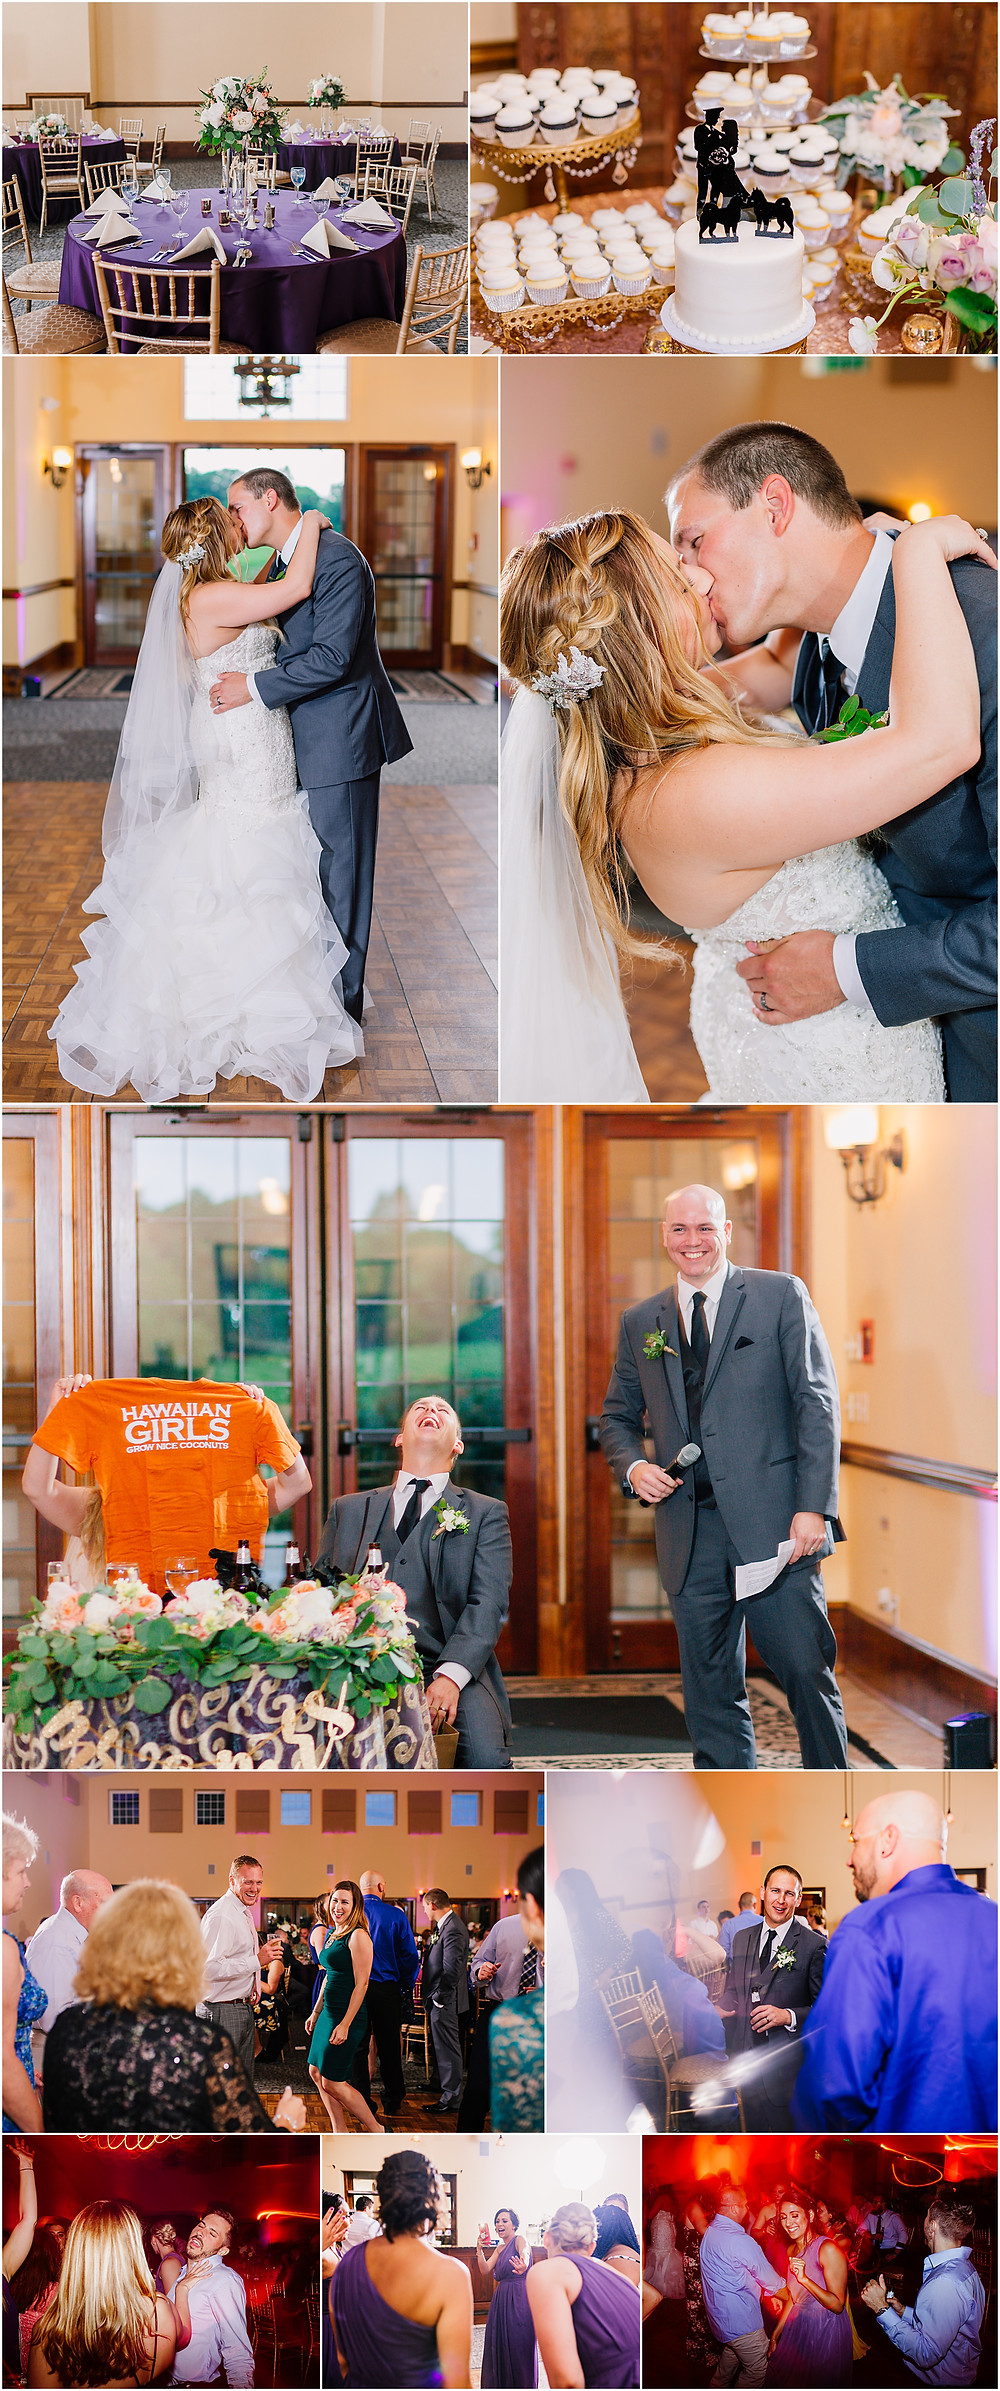 Running Hare Vineyard Wedding Reception - Annapolis Wedding Photographer